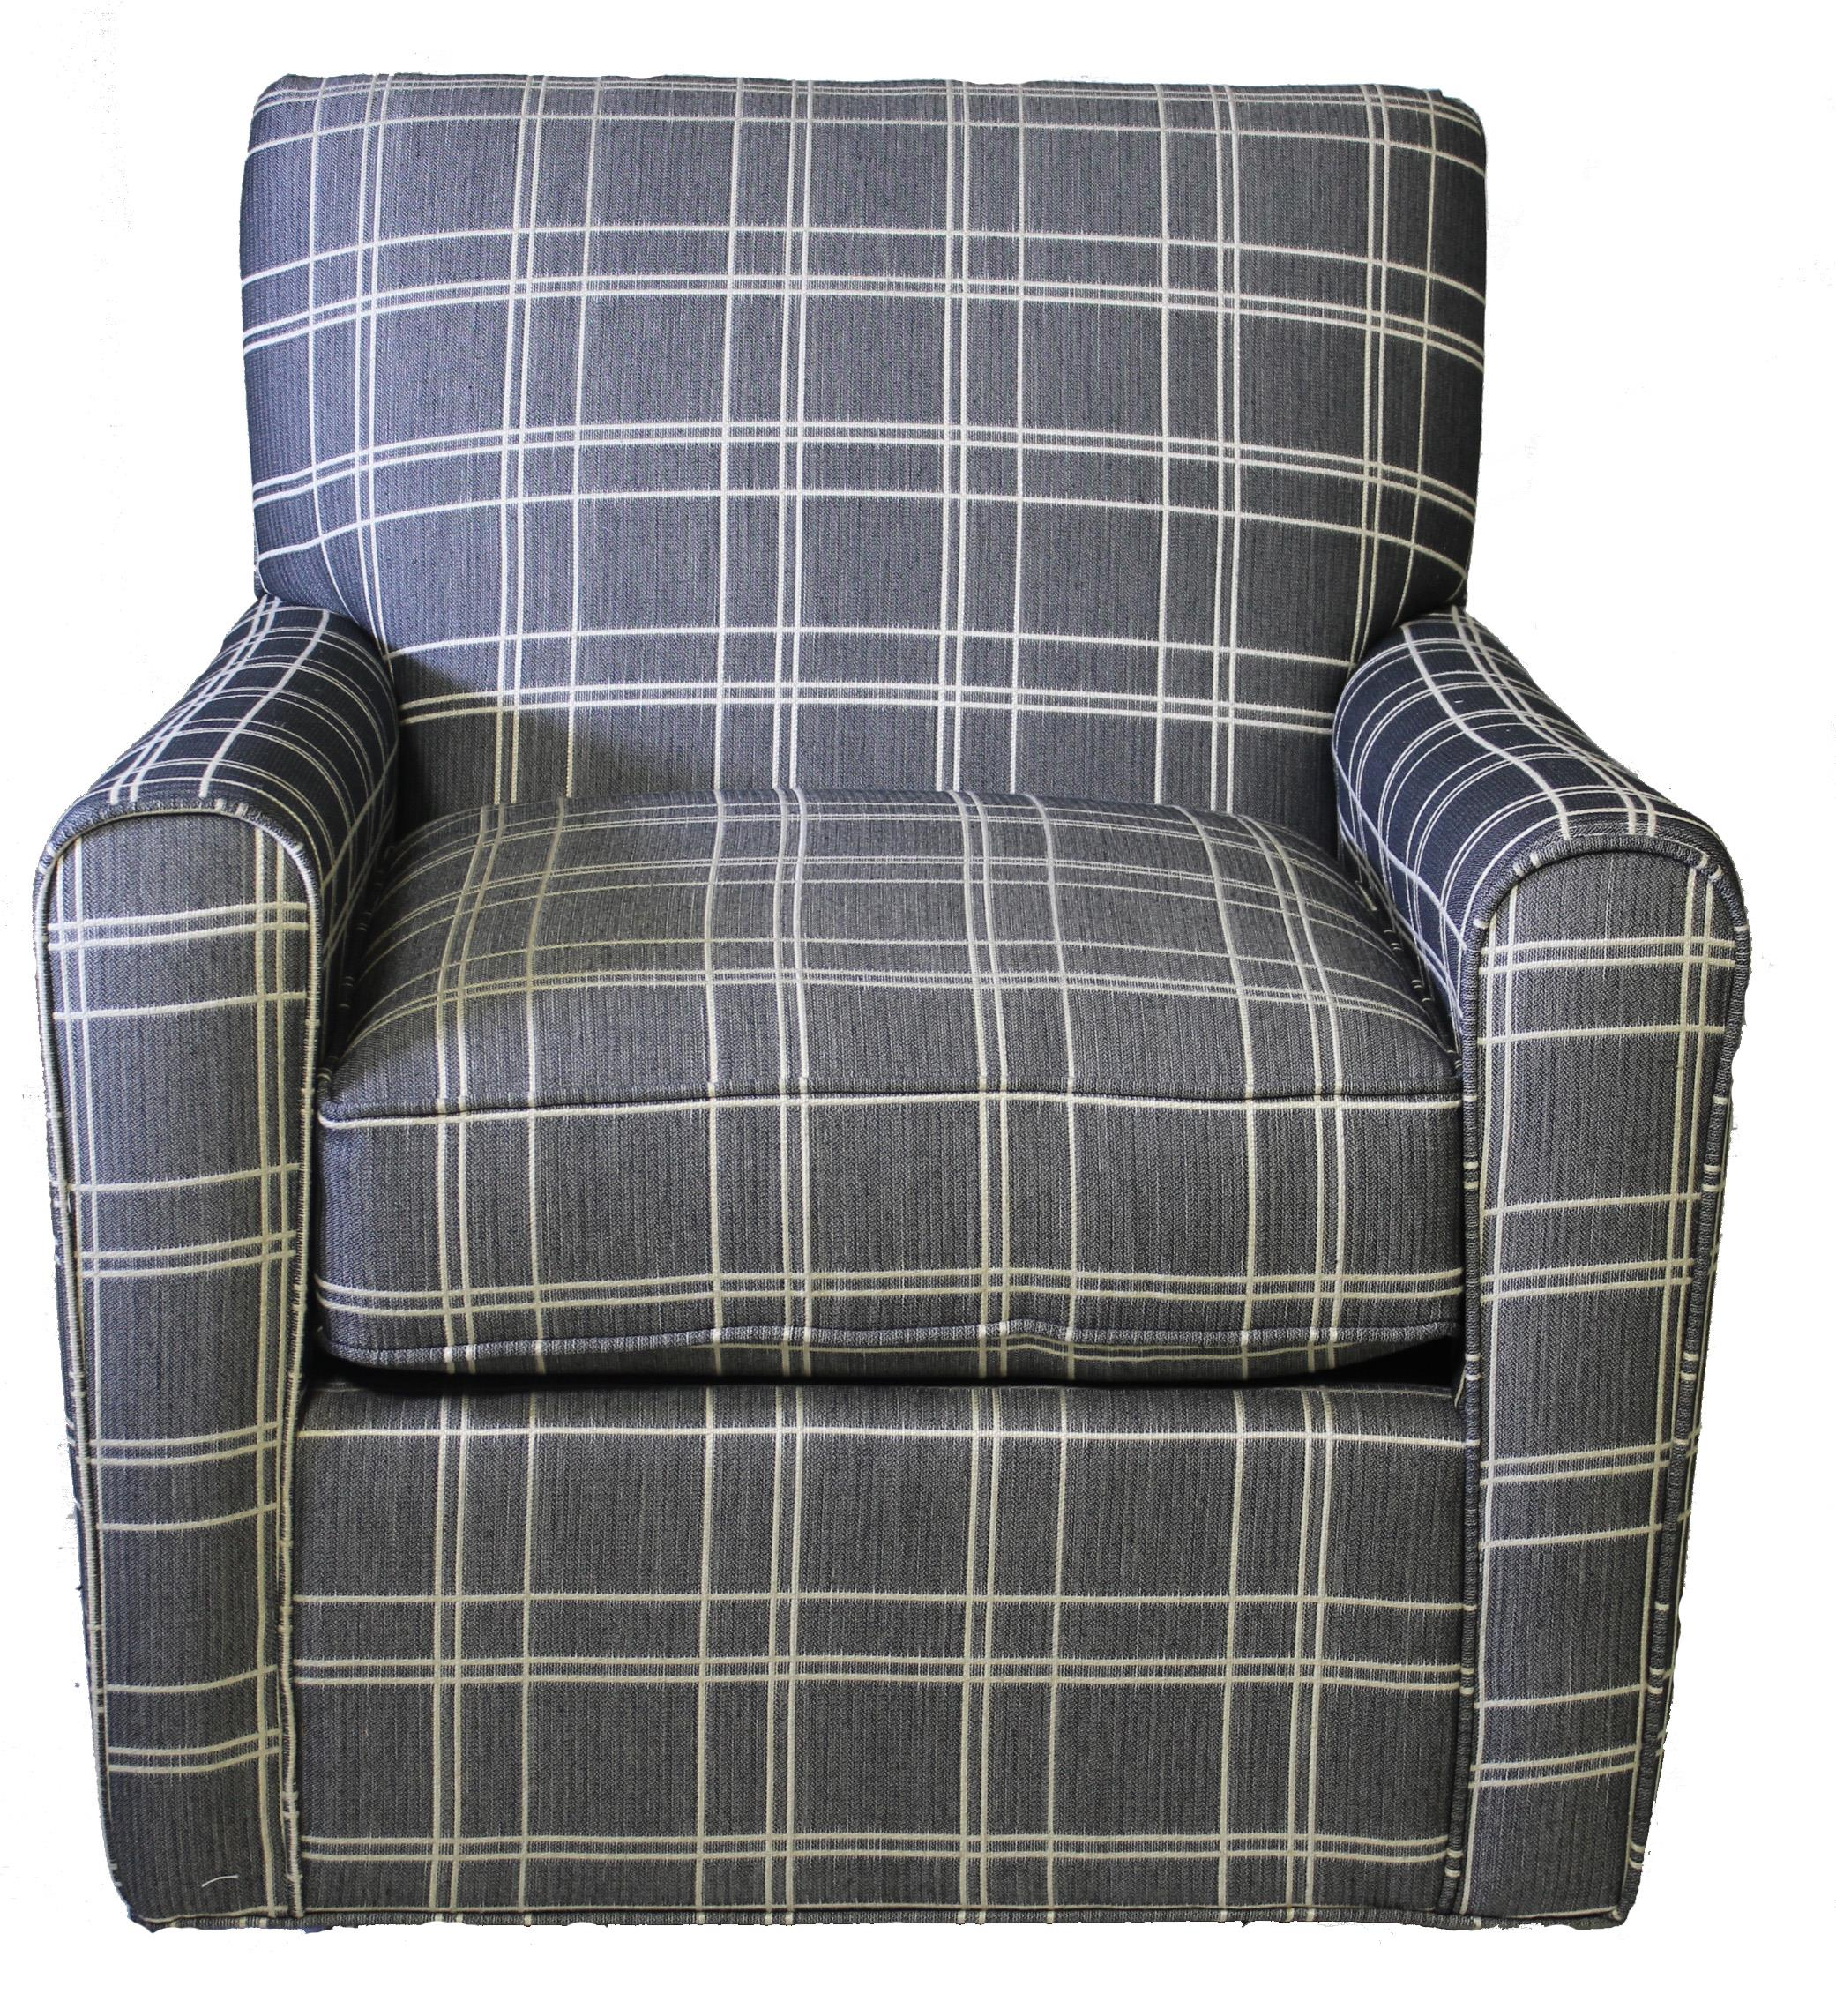 Craftmaster Accent Chairs Swivel Chair - Item Number: 059110